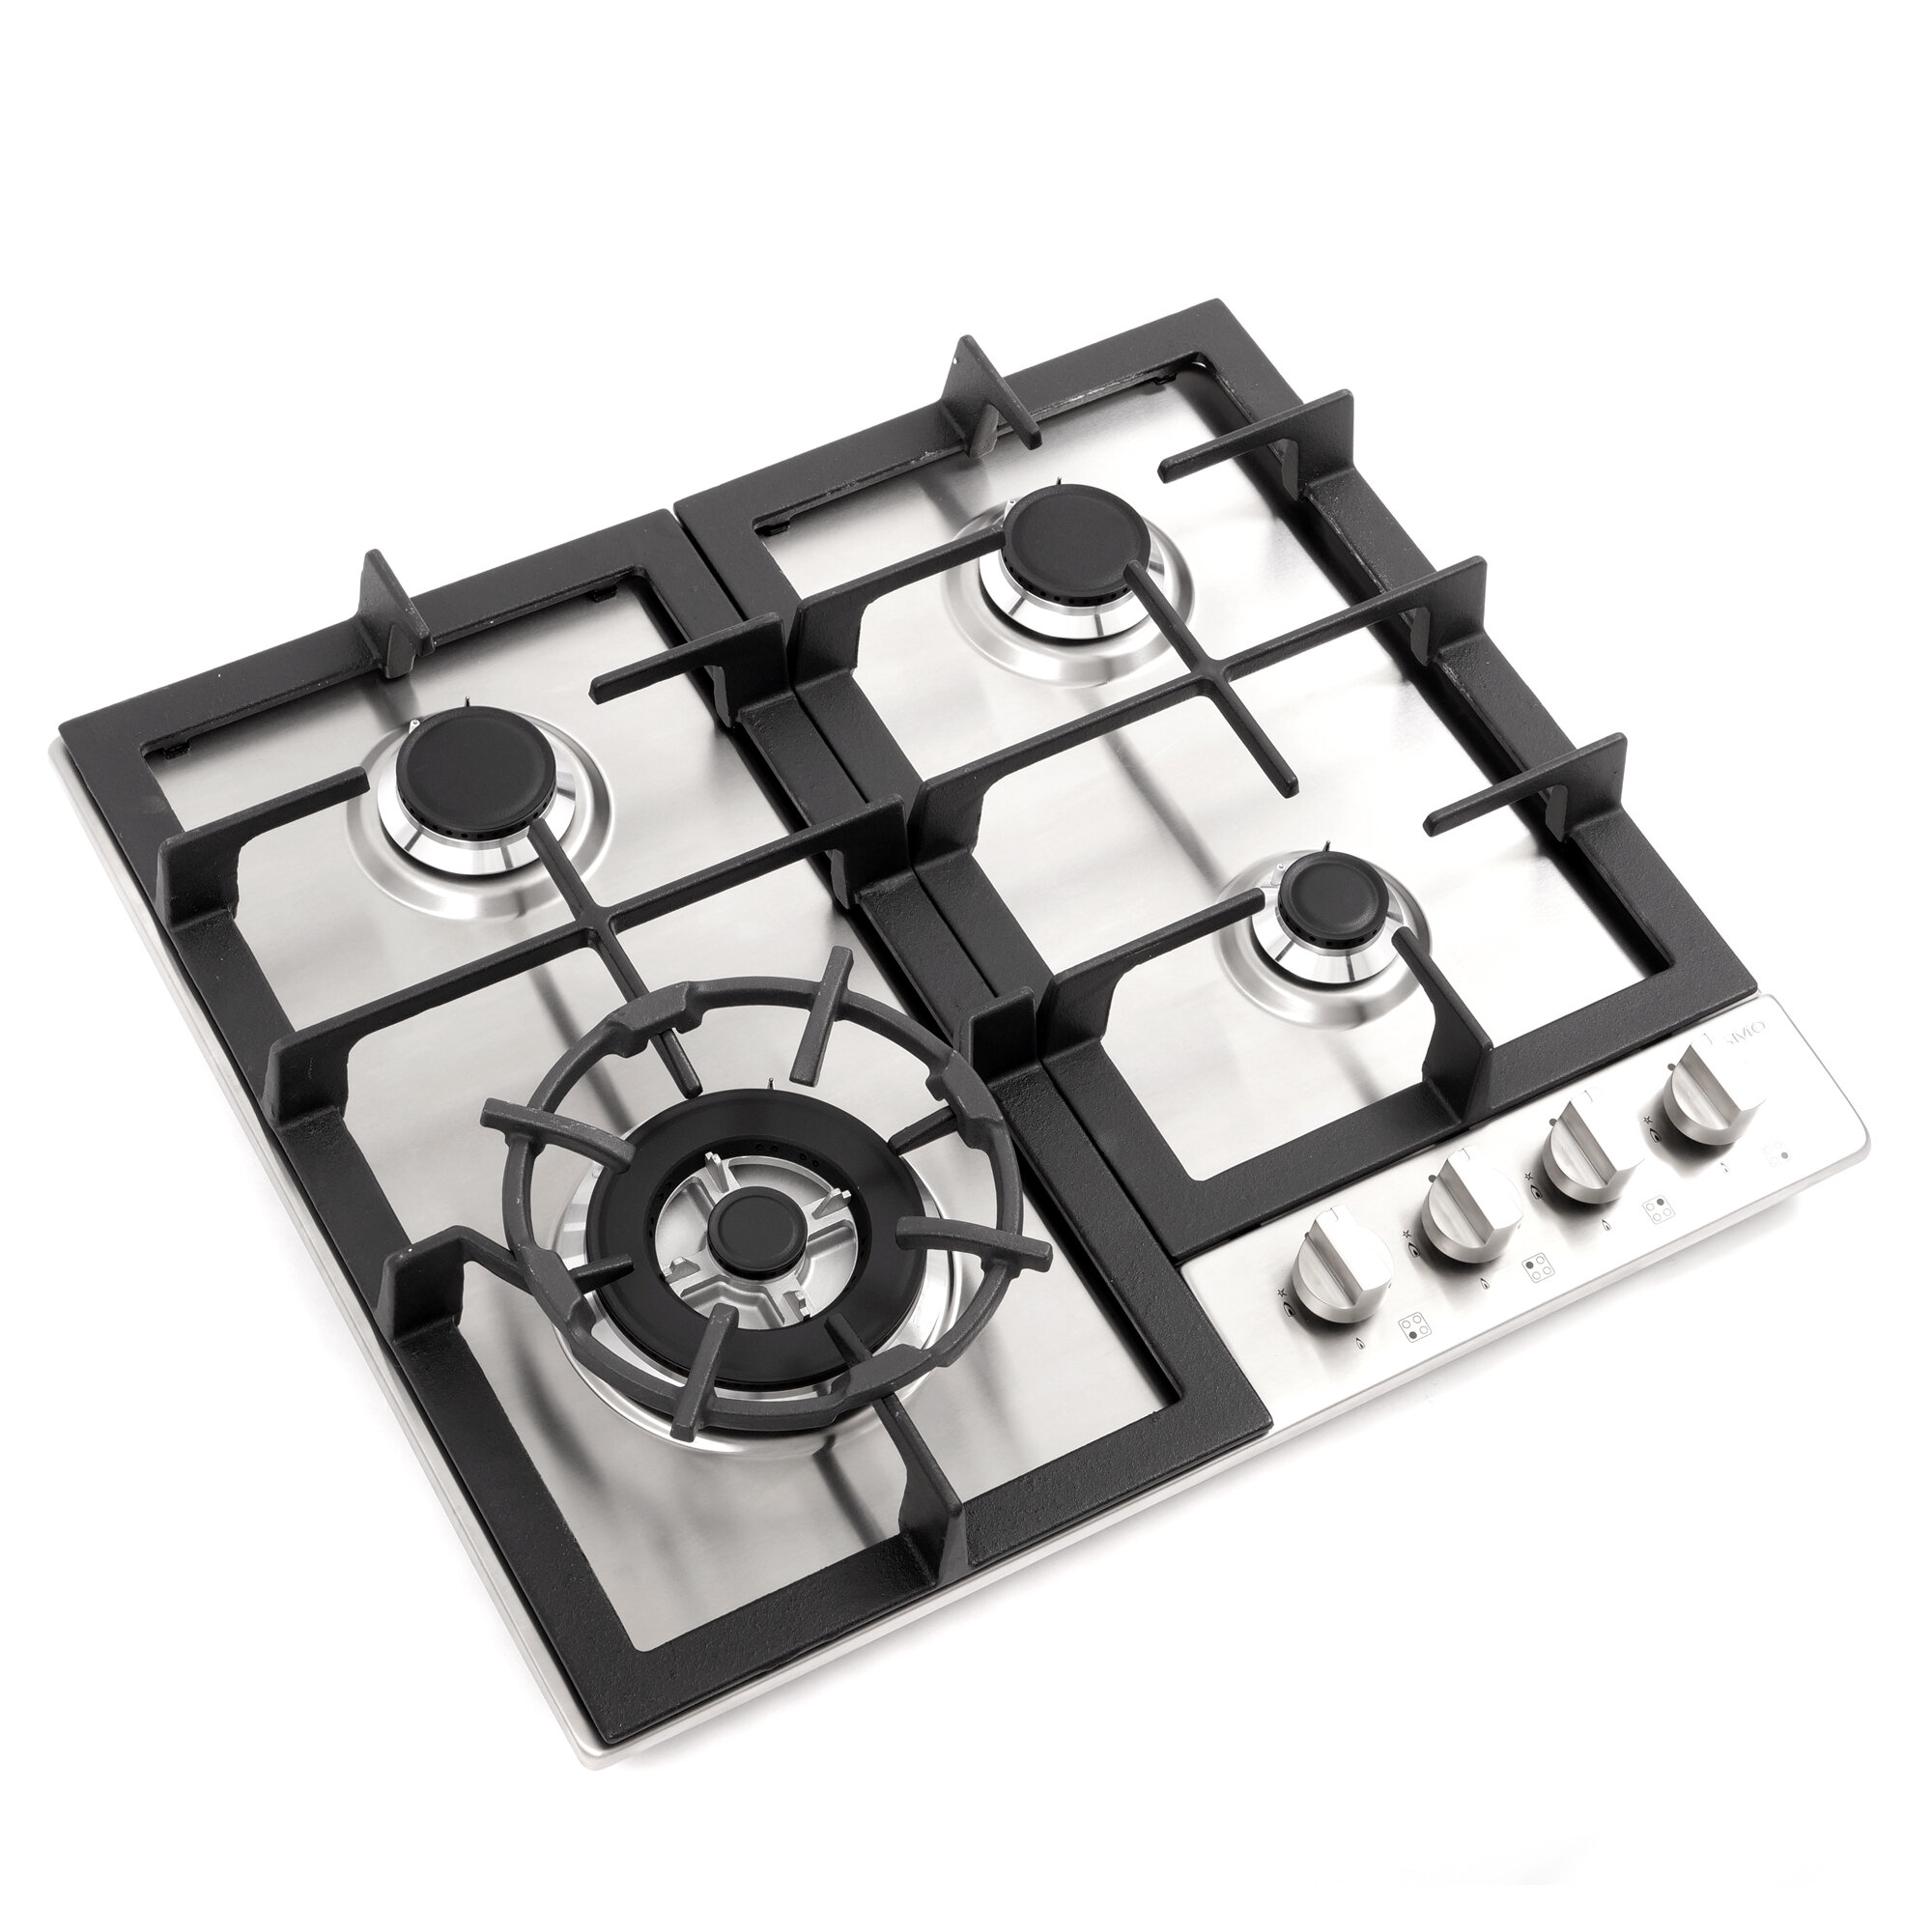 24 Black Electric Tempered Glass Built-in Kitchen 4 Burner Gas Cooktop ON SALE NOW !! !!